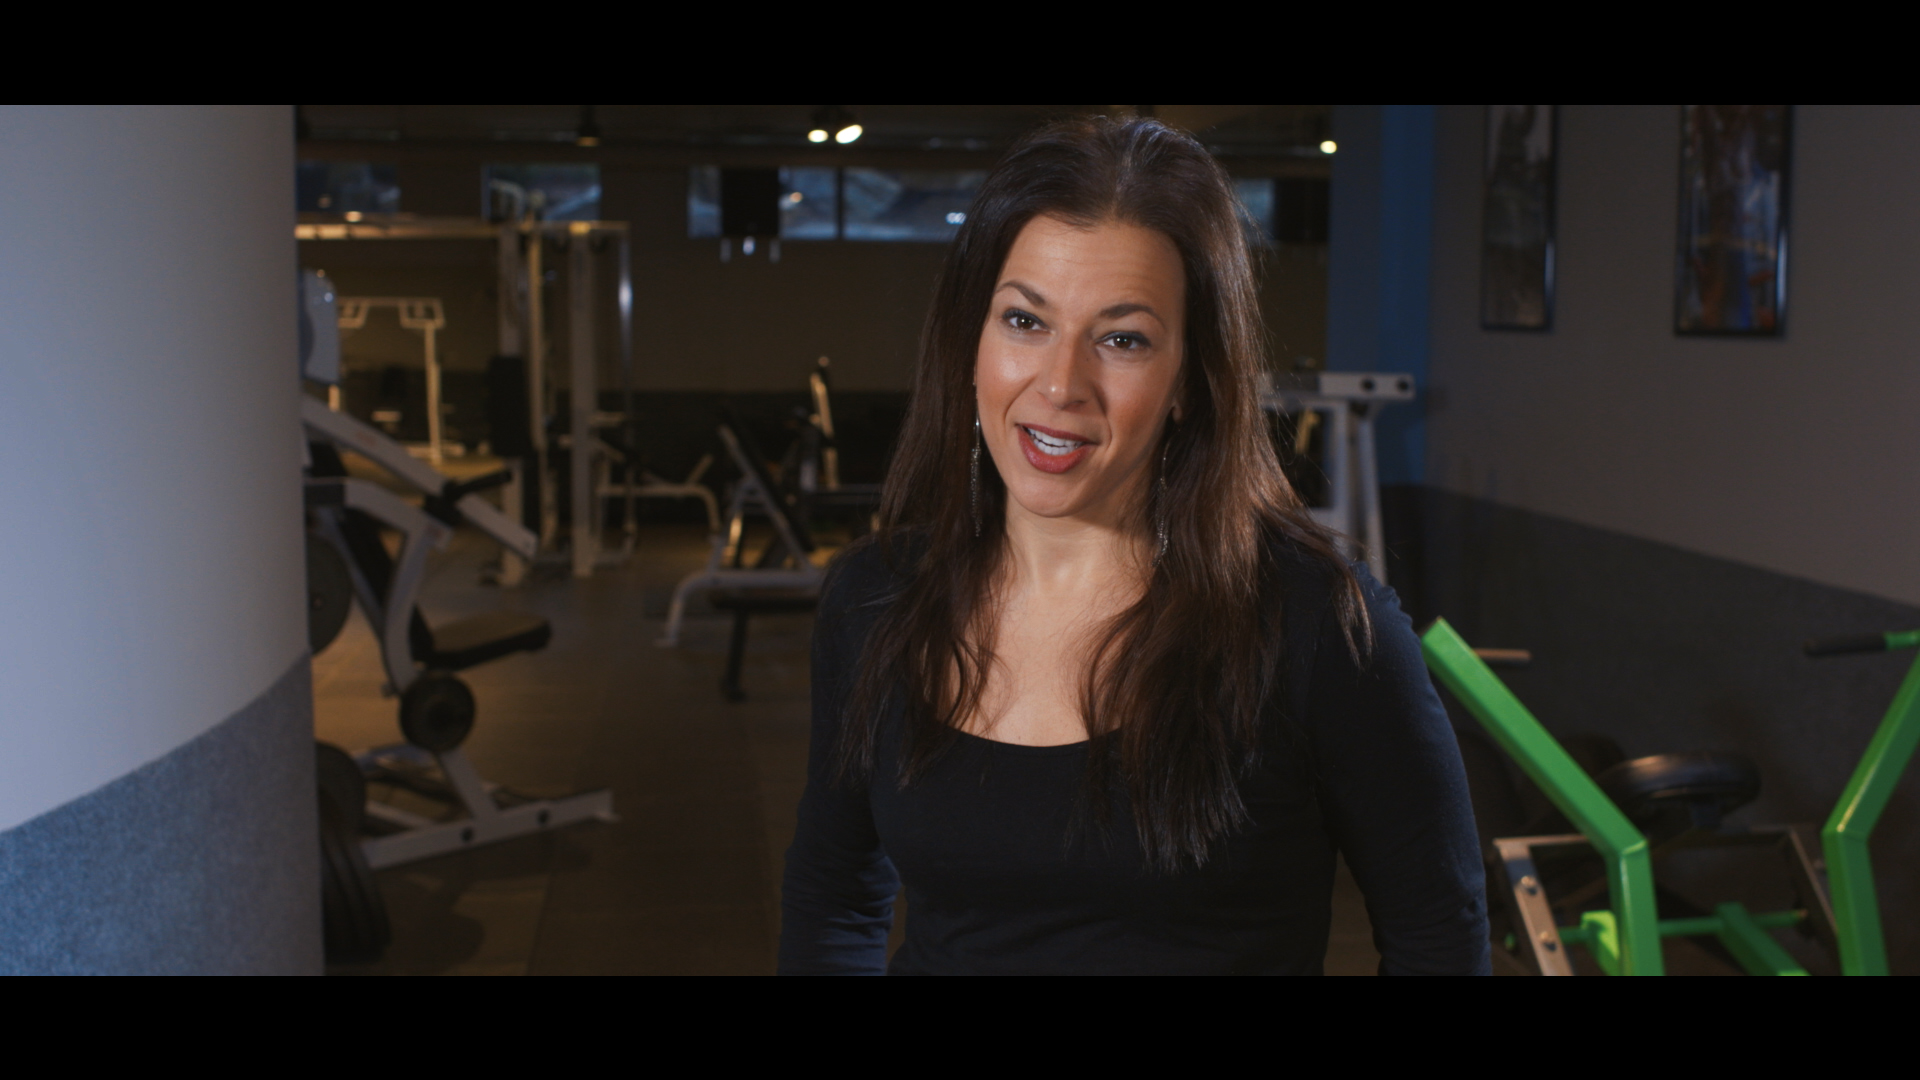 Corporate style interview at Prana Fitness